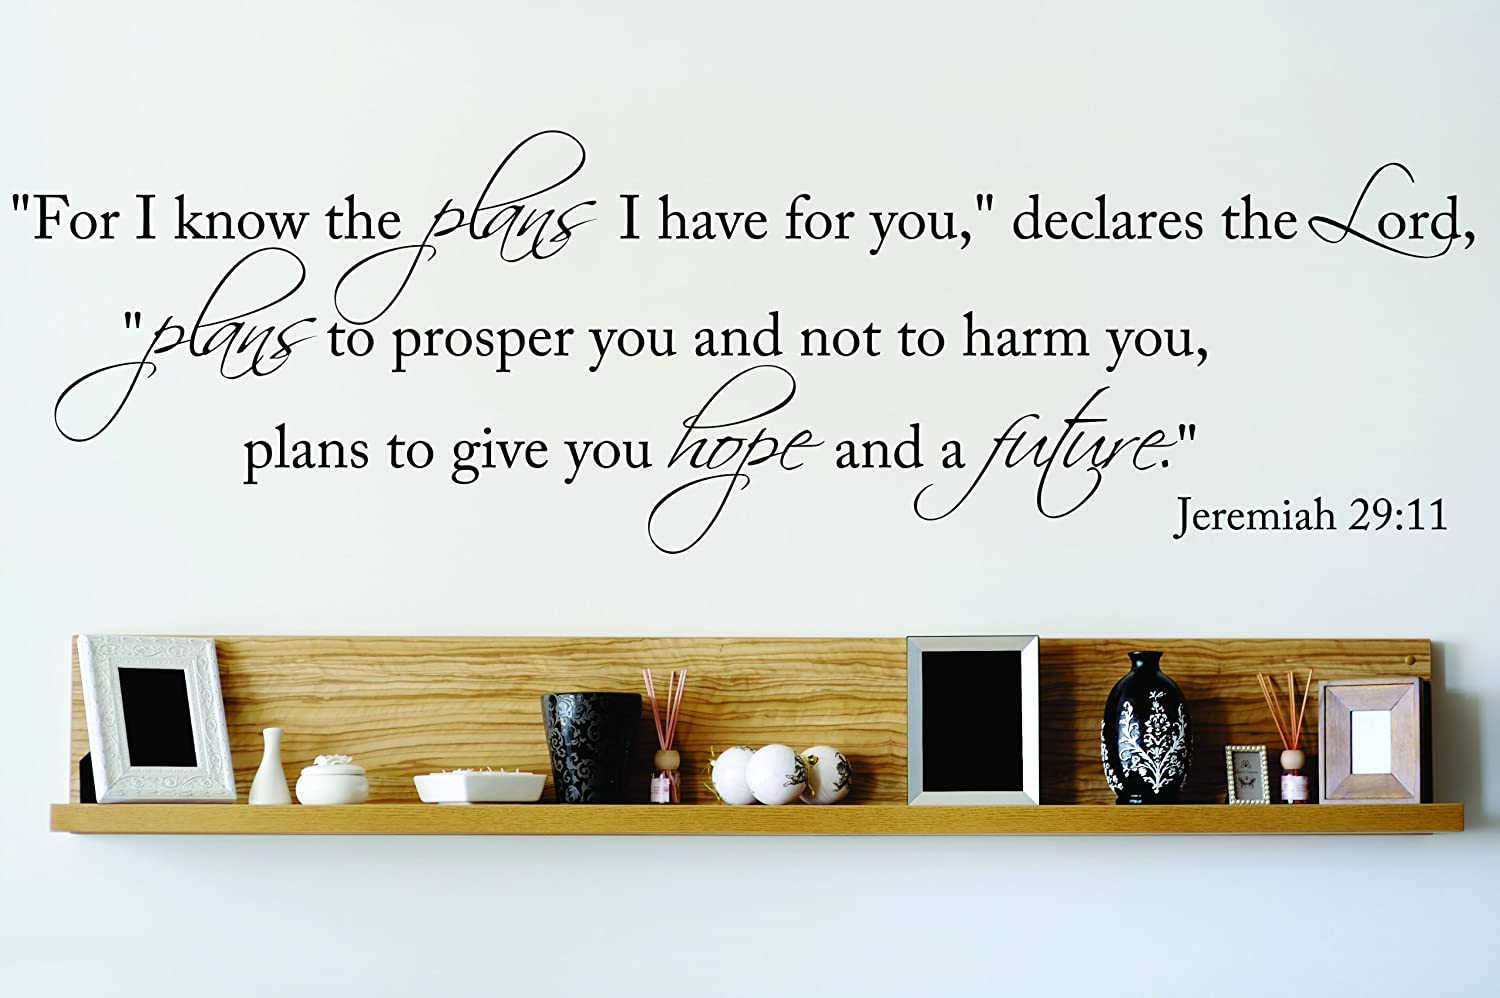 Design with Vinyl OMG 772 Black For I Know The Plans I Have For You Declares The Lord Plans to Prosper You and Not to Harm You Jeremiah 29:11 Quote Decal, 10-Inch x 40-Inch, Black by Design with Vinyl B00J6AVI3S